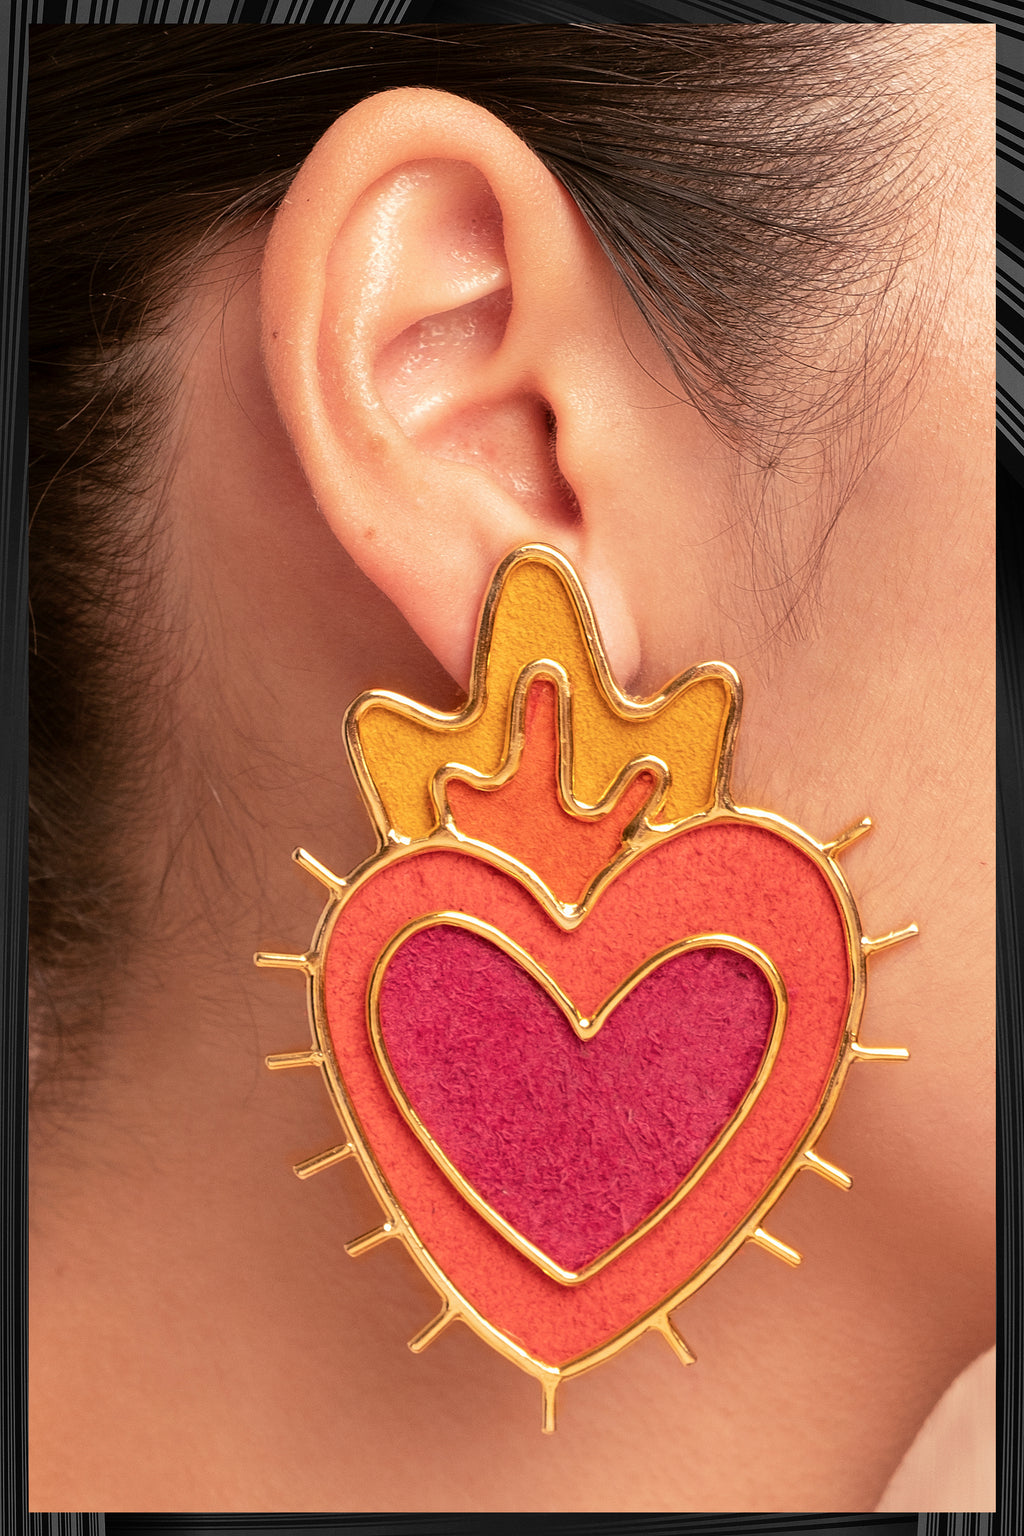 Sagrado Corazon Earrings